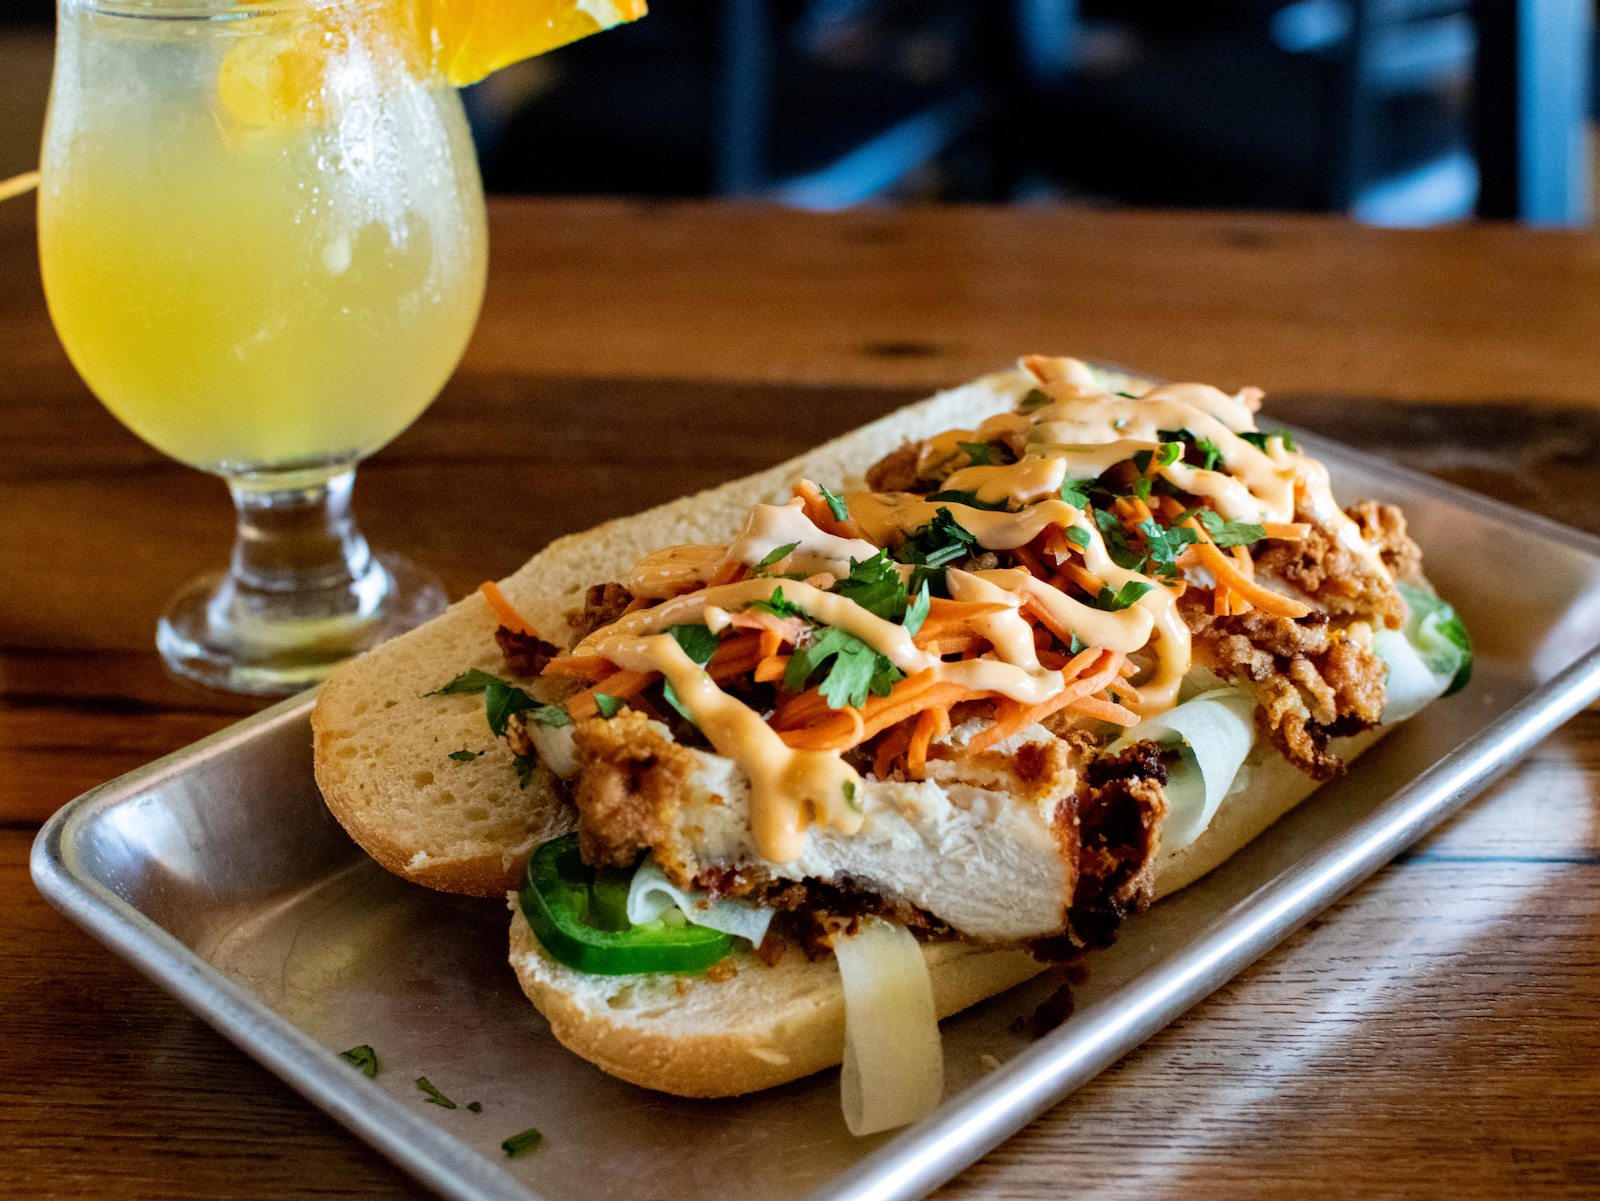 Fried chicken banh mi at Crafty Cow Tosa